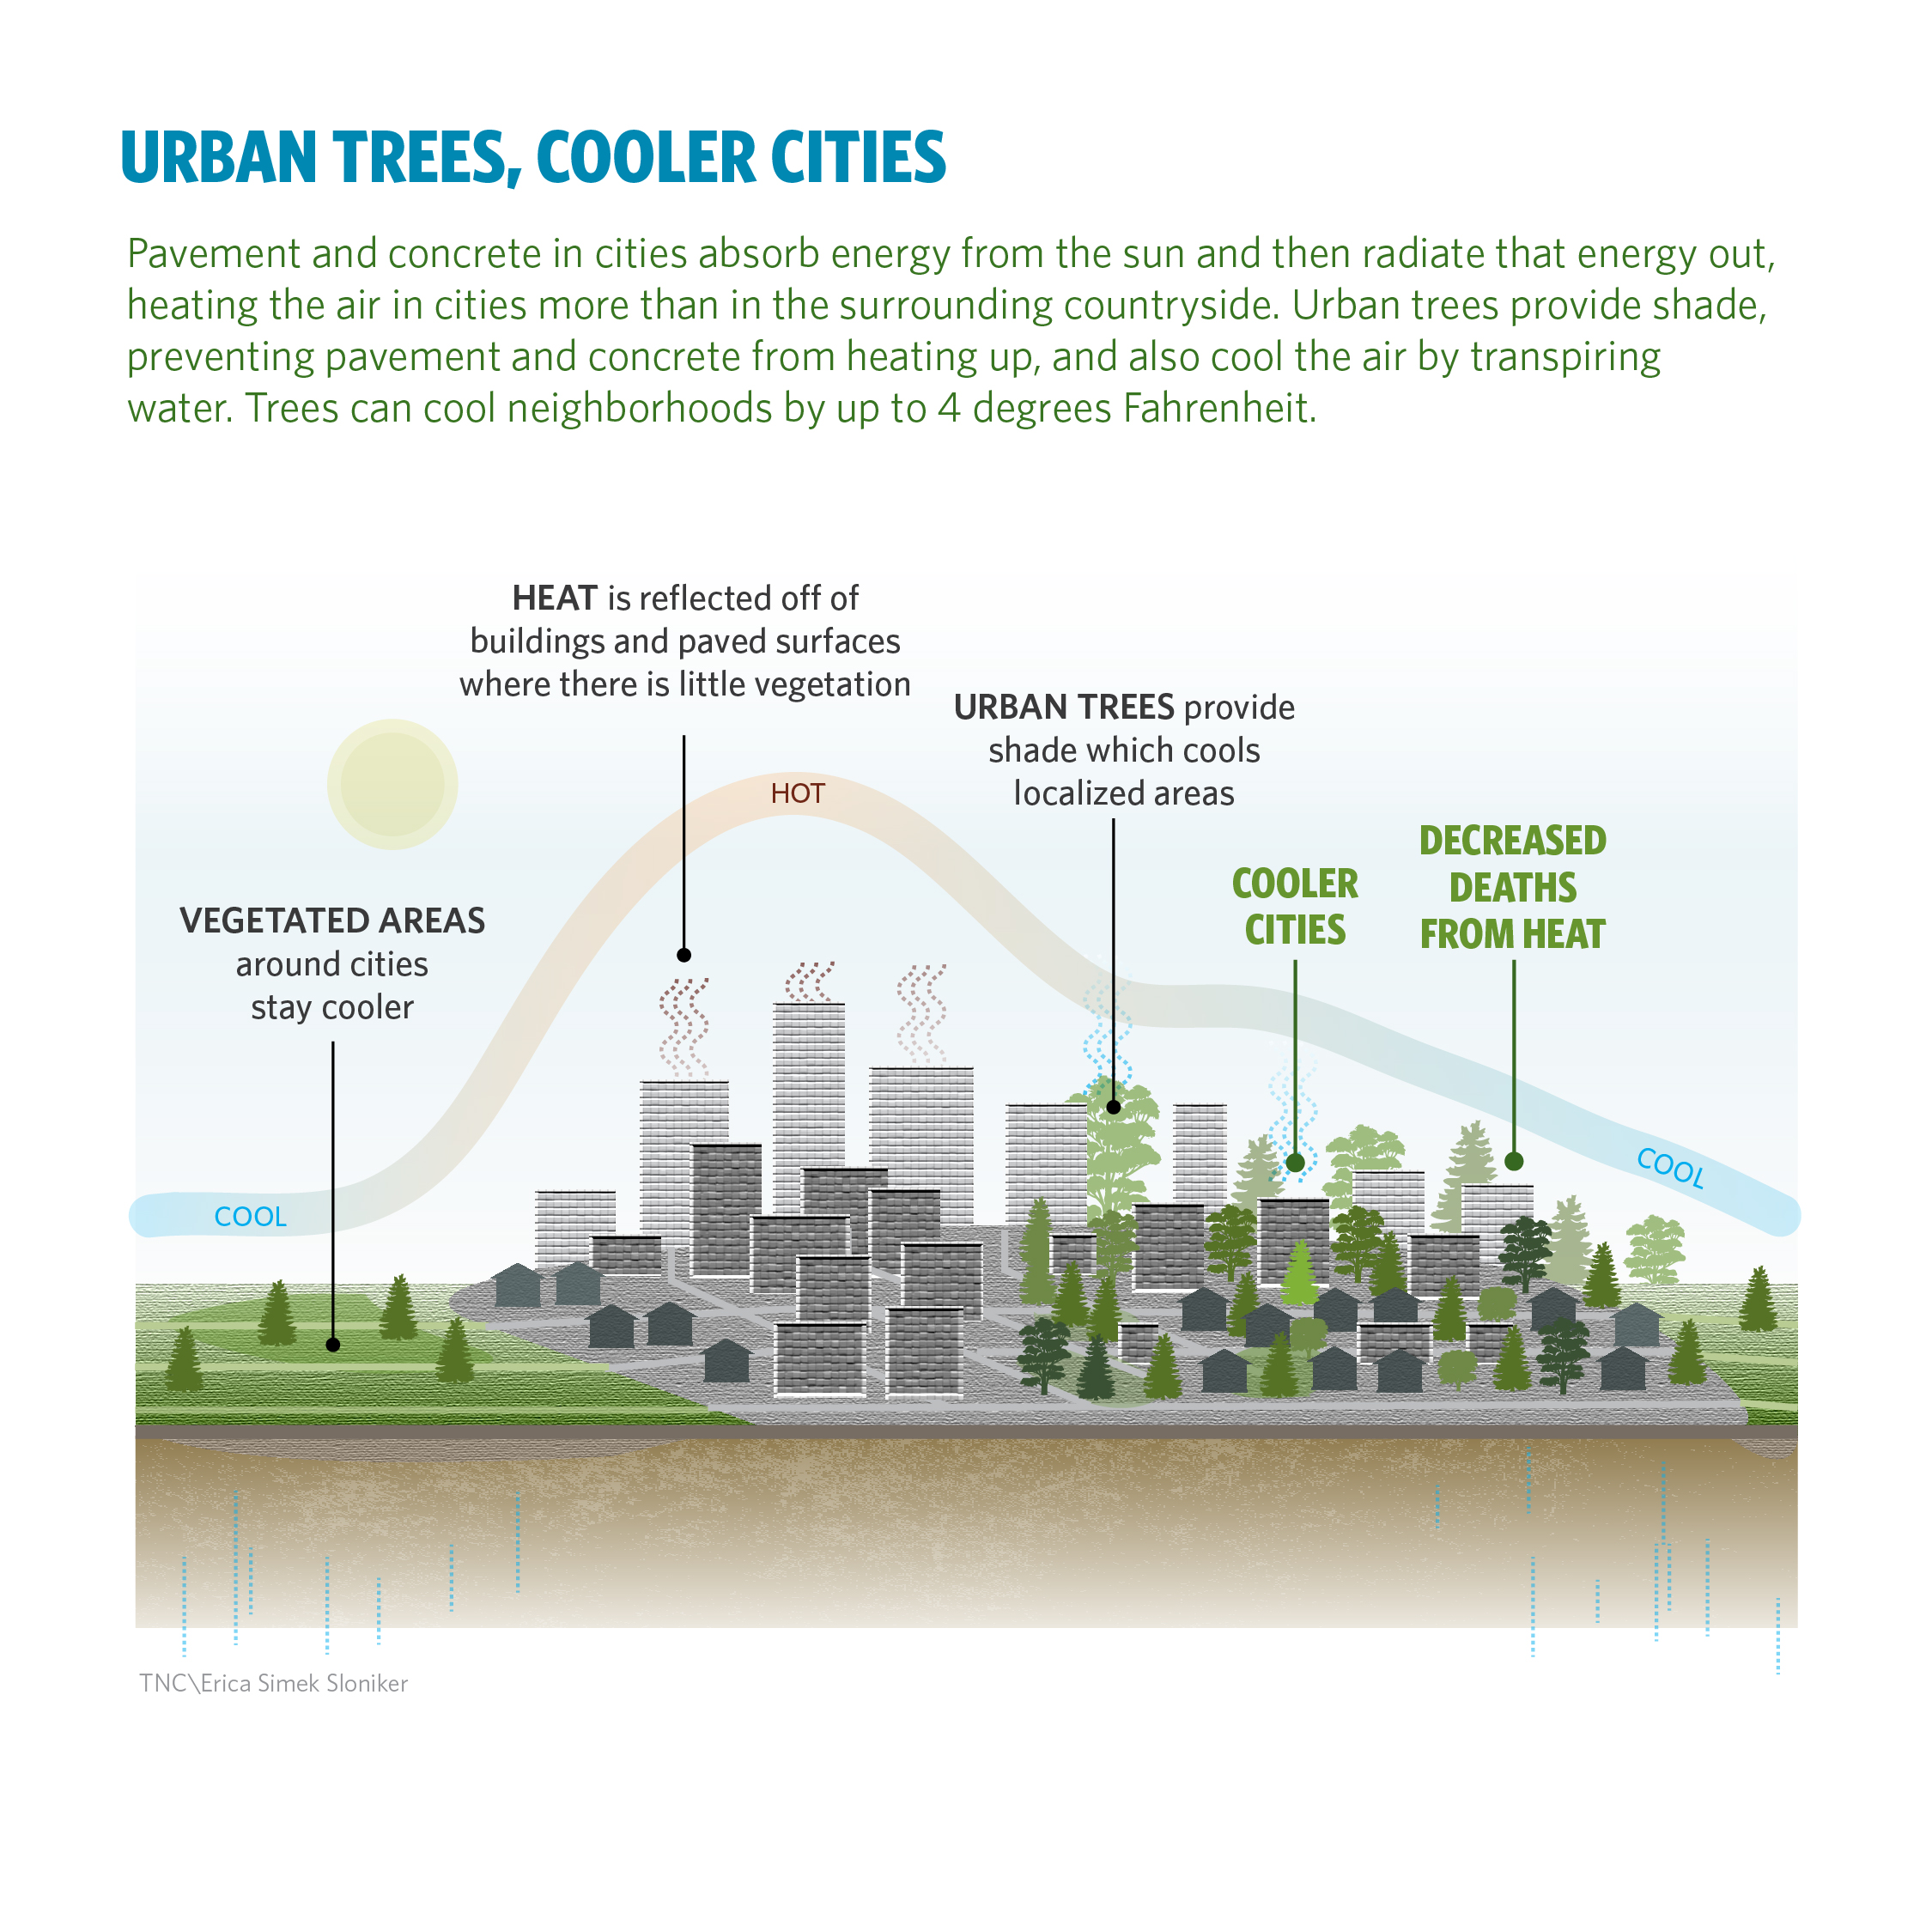 Wholesale High Quality Air Cooling Summer And Winter: Urban Trees Can Save Lives By Reducing Air Pollution And